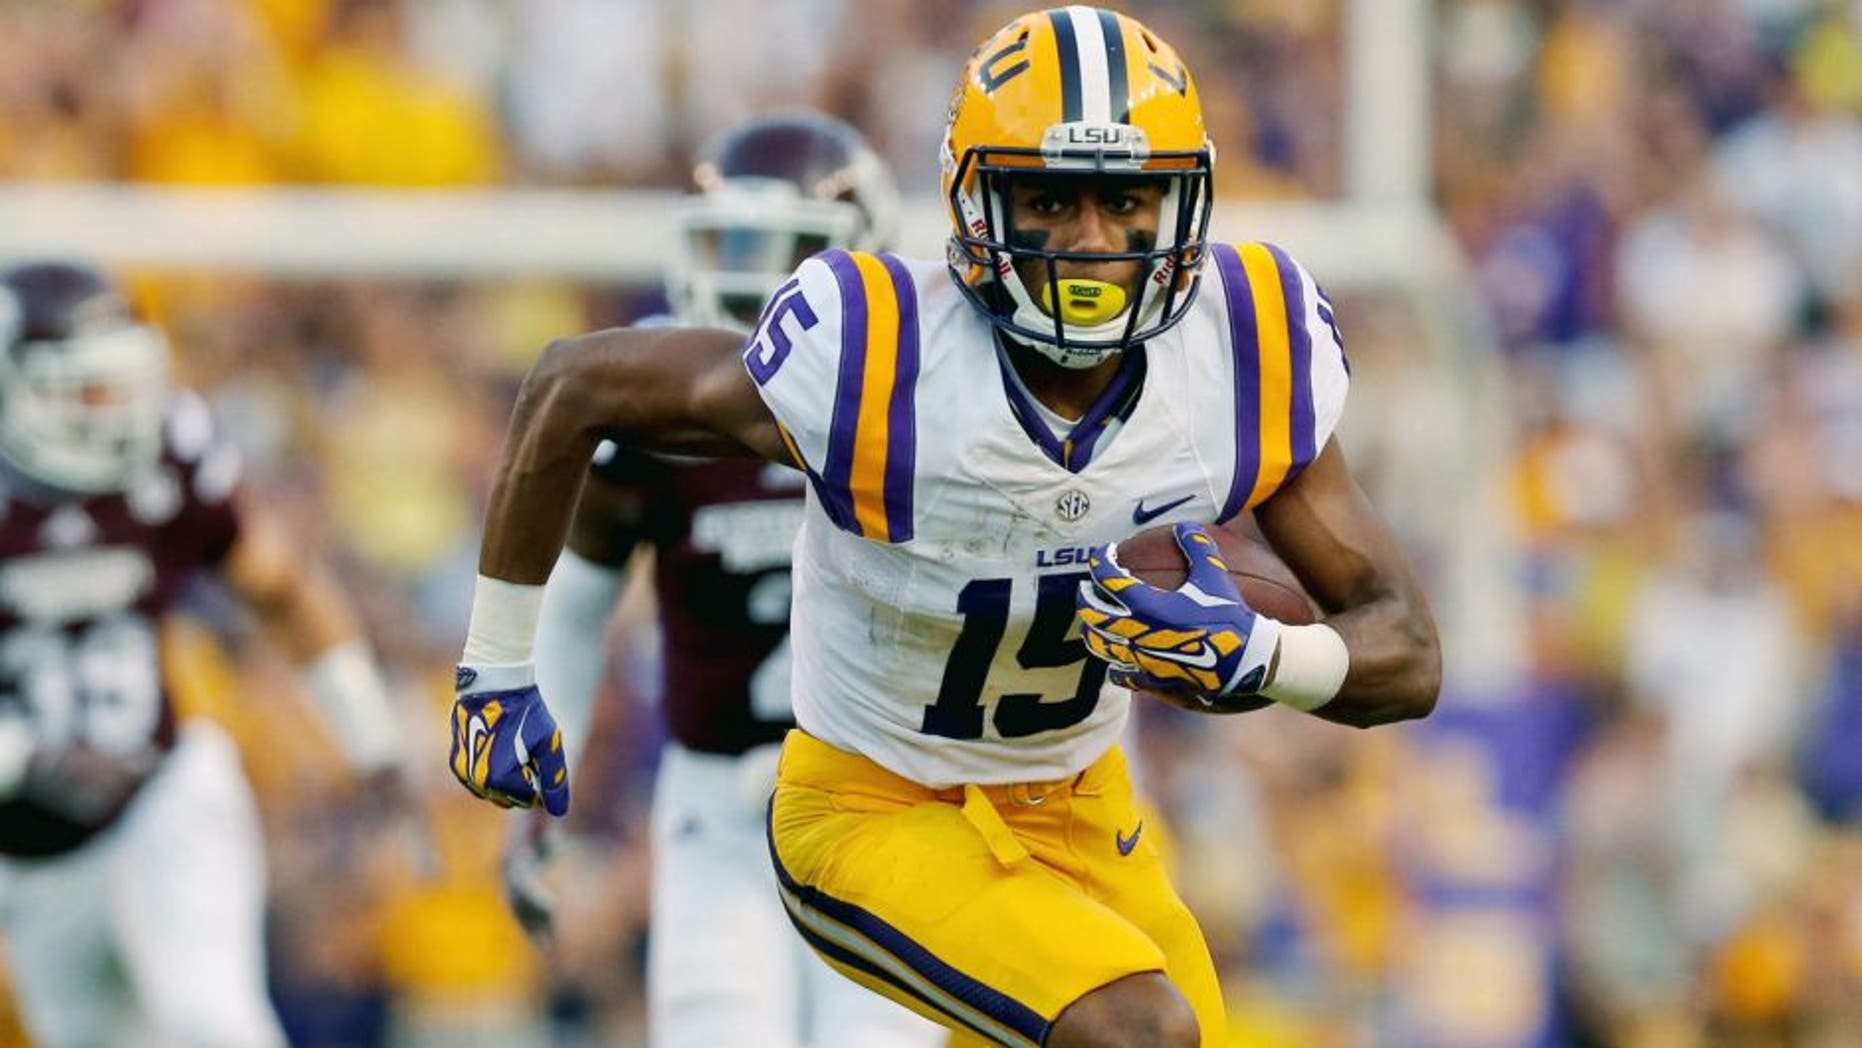 Sep 20, 2014; Baton Rouge, LA, USA; LSU Tigers wide receiver Malachi Dupre (15) runs after a catch against the Mississippi State Bulldogs during the first half of a game at Tiger Stadium. Mandatory Credit: Derick E. Hingle-USA TODAY Sports